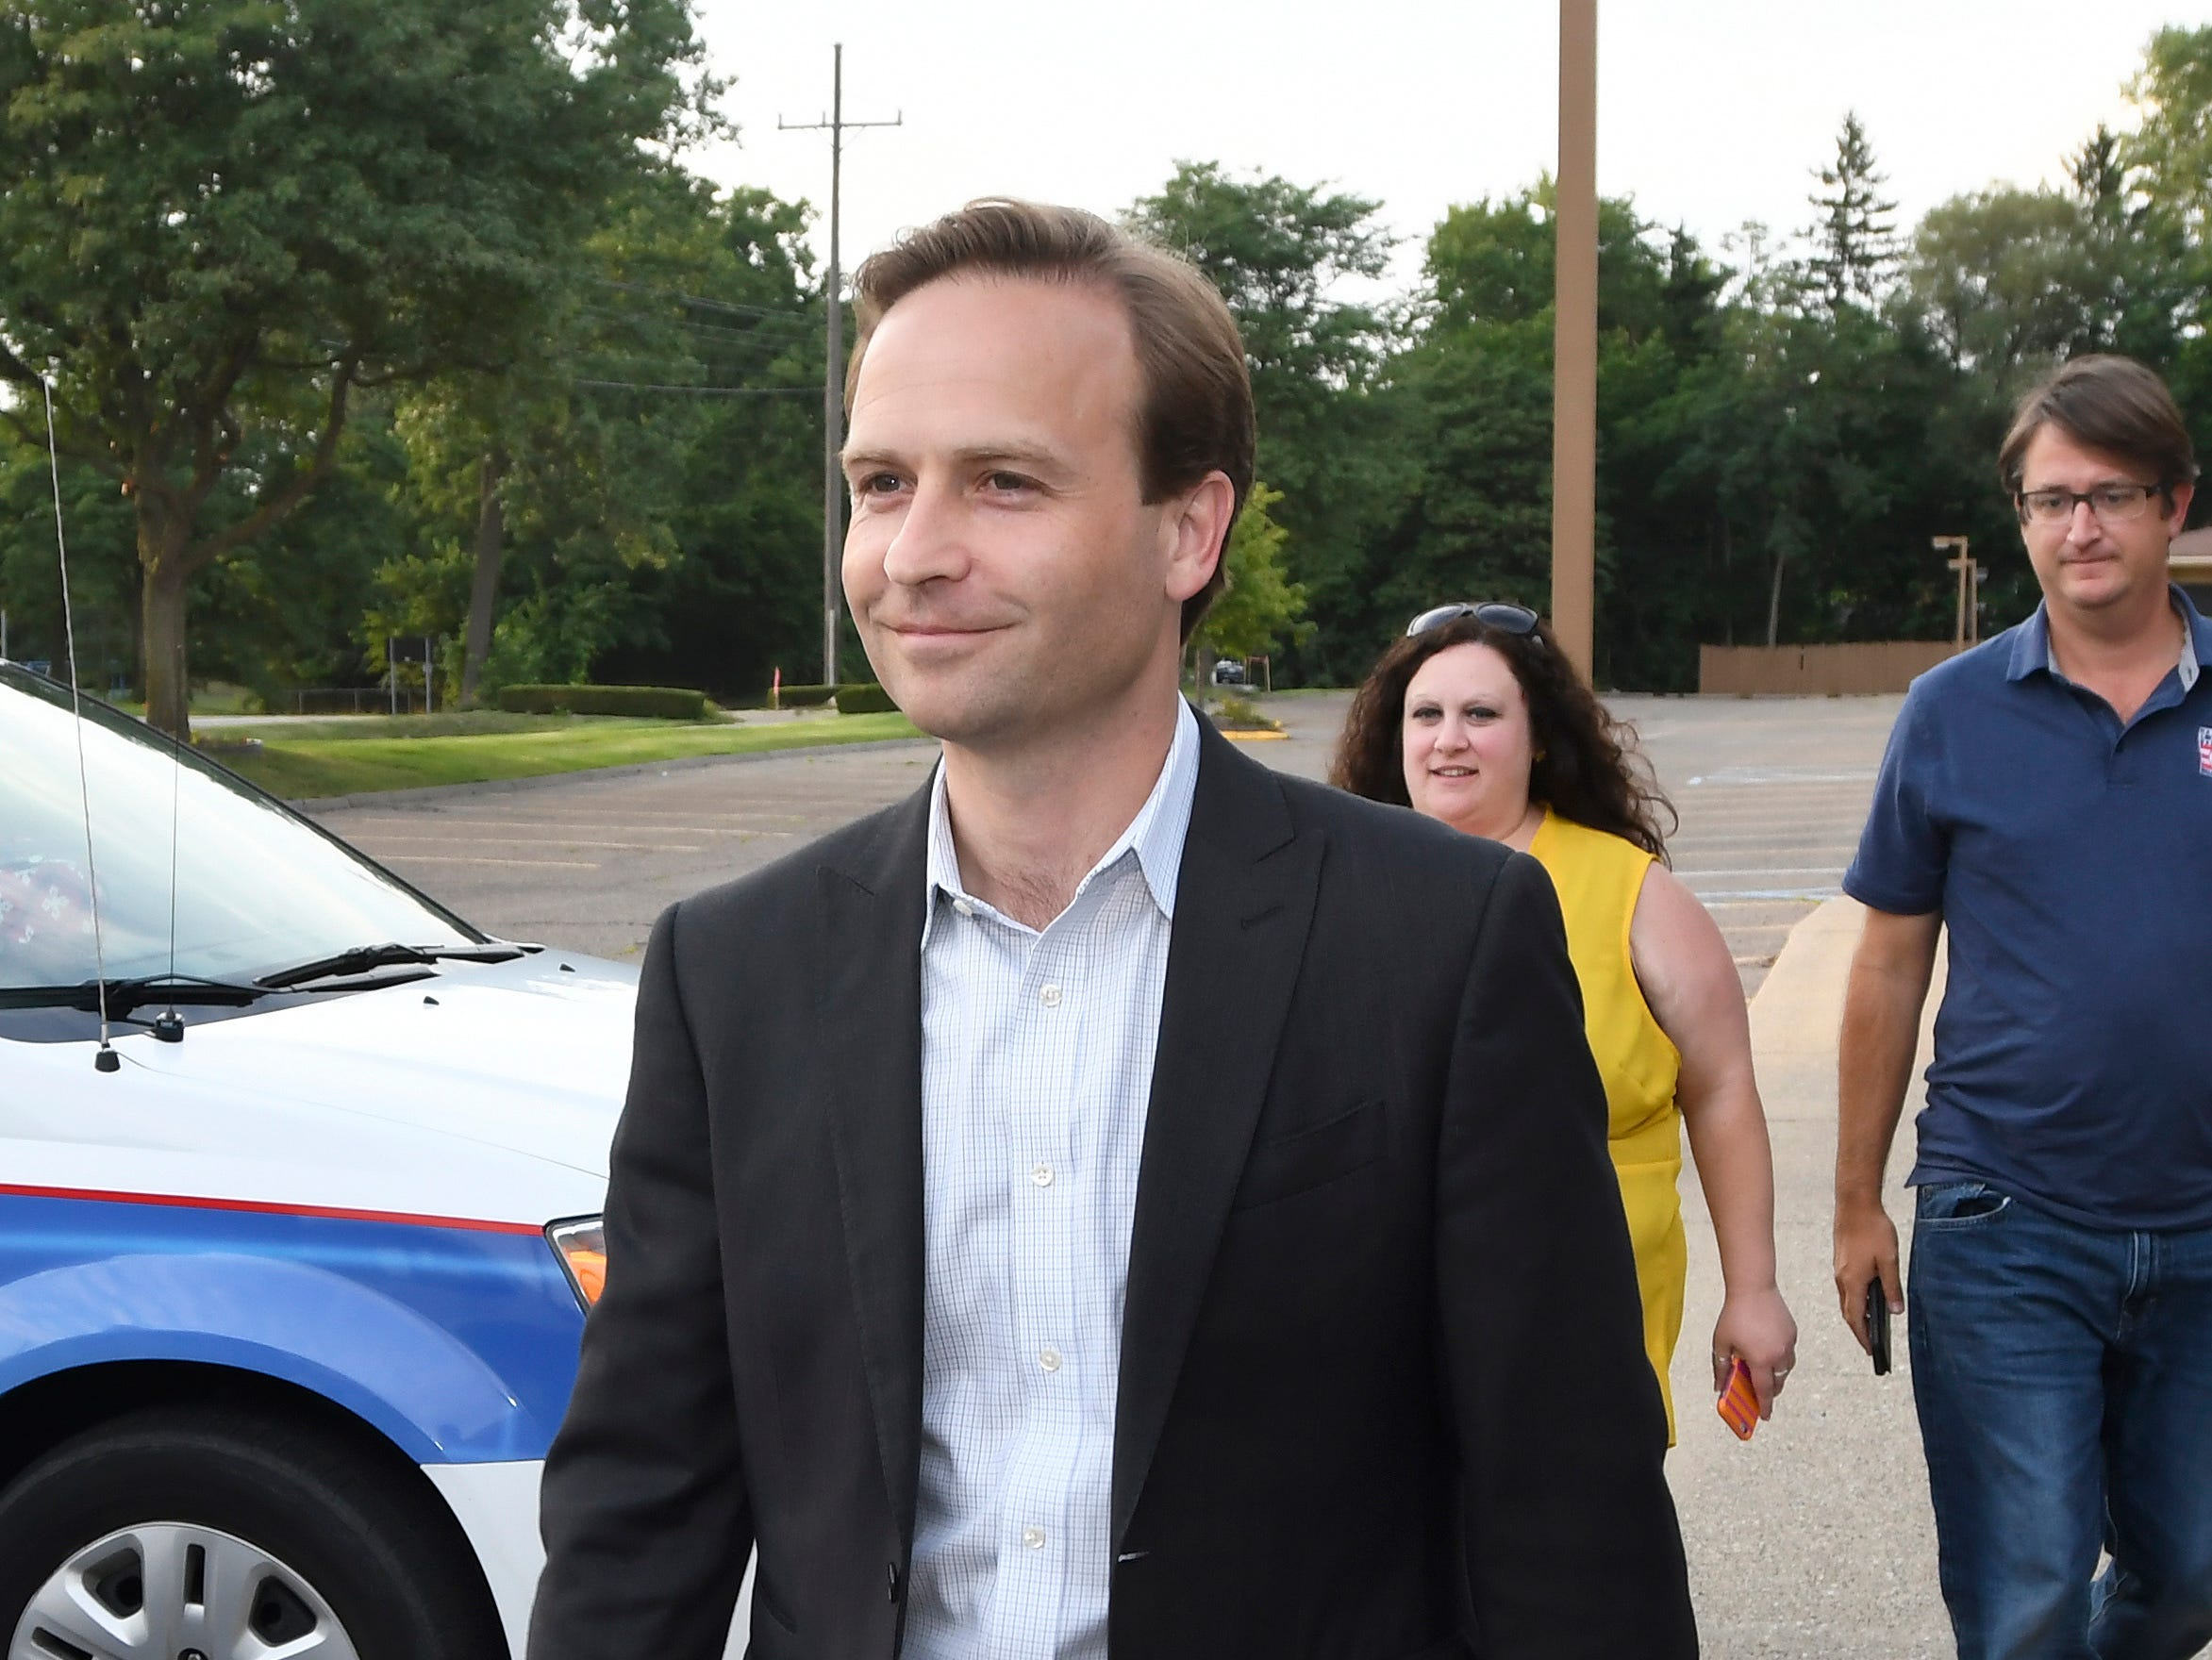 Michigan Lt. Gov. Brian Calley walks to a news conference held at Barbat Holdings, Tuesday, Aug. 7, 2018 in West Bloomfield, Mich. Calley is a gubernatorial candidate in Tuesday's primary.